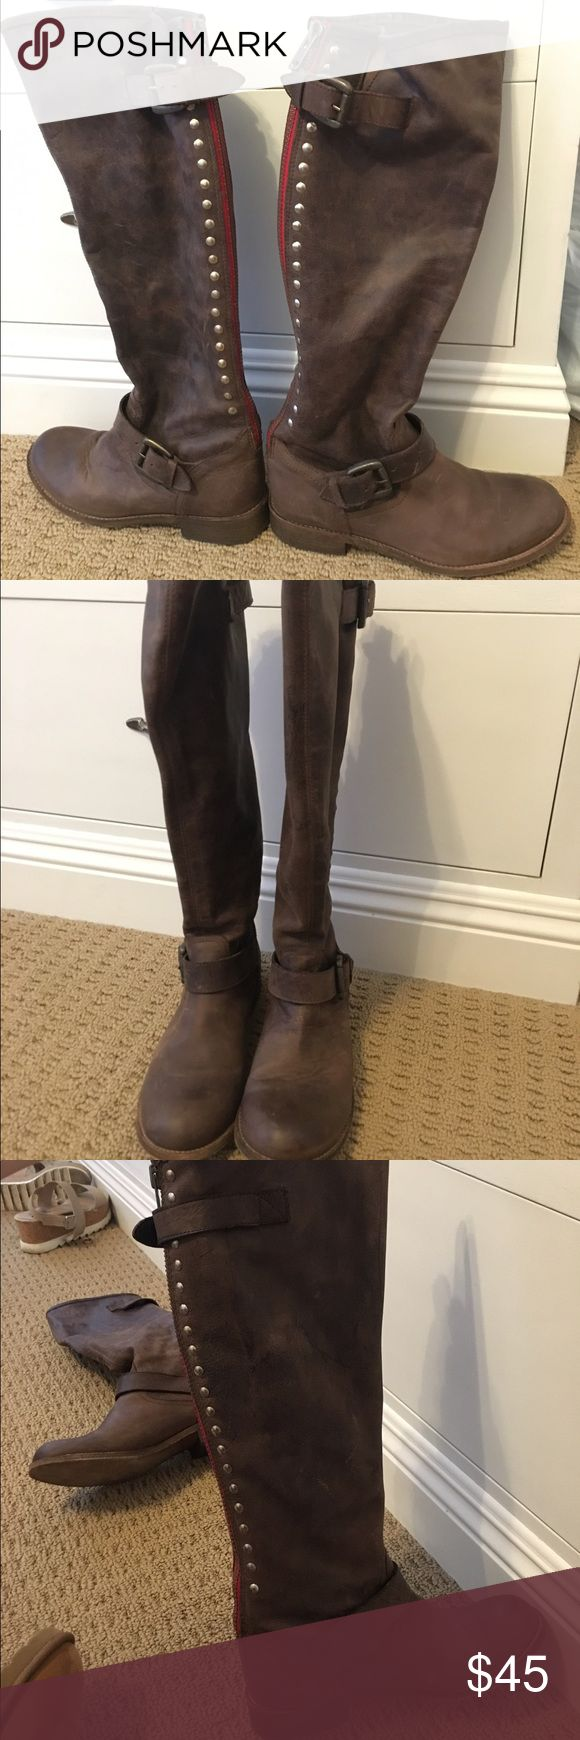 Steve Madden Lynx Brown boots Hardly worn. Excellent condition. Stored inside original box for protection. Steve Madden Shoes Heeled Boots